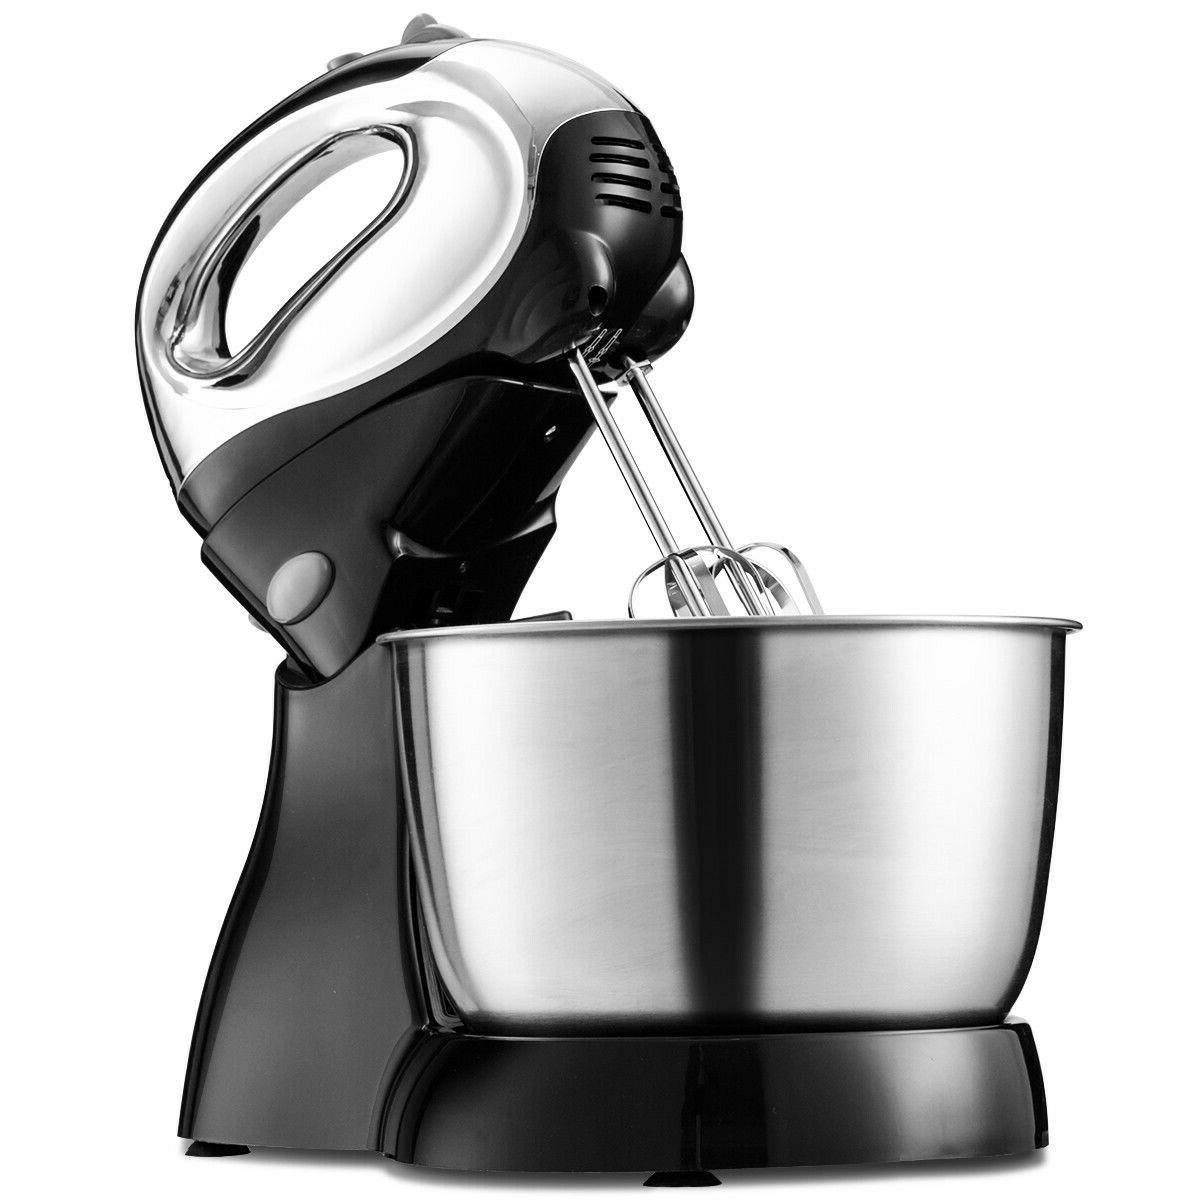 5 speed stand mixer with dough hooks